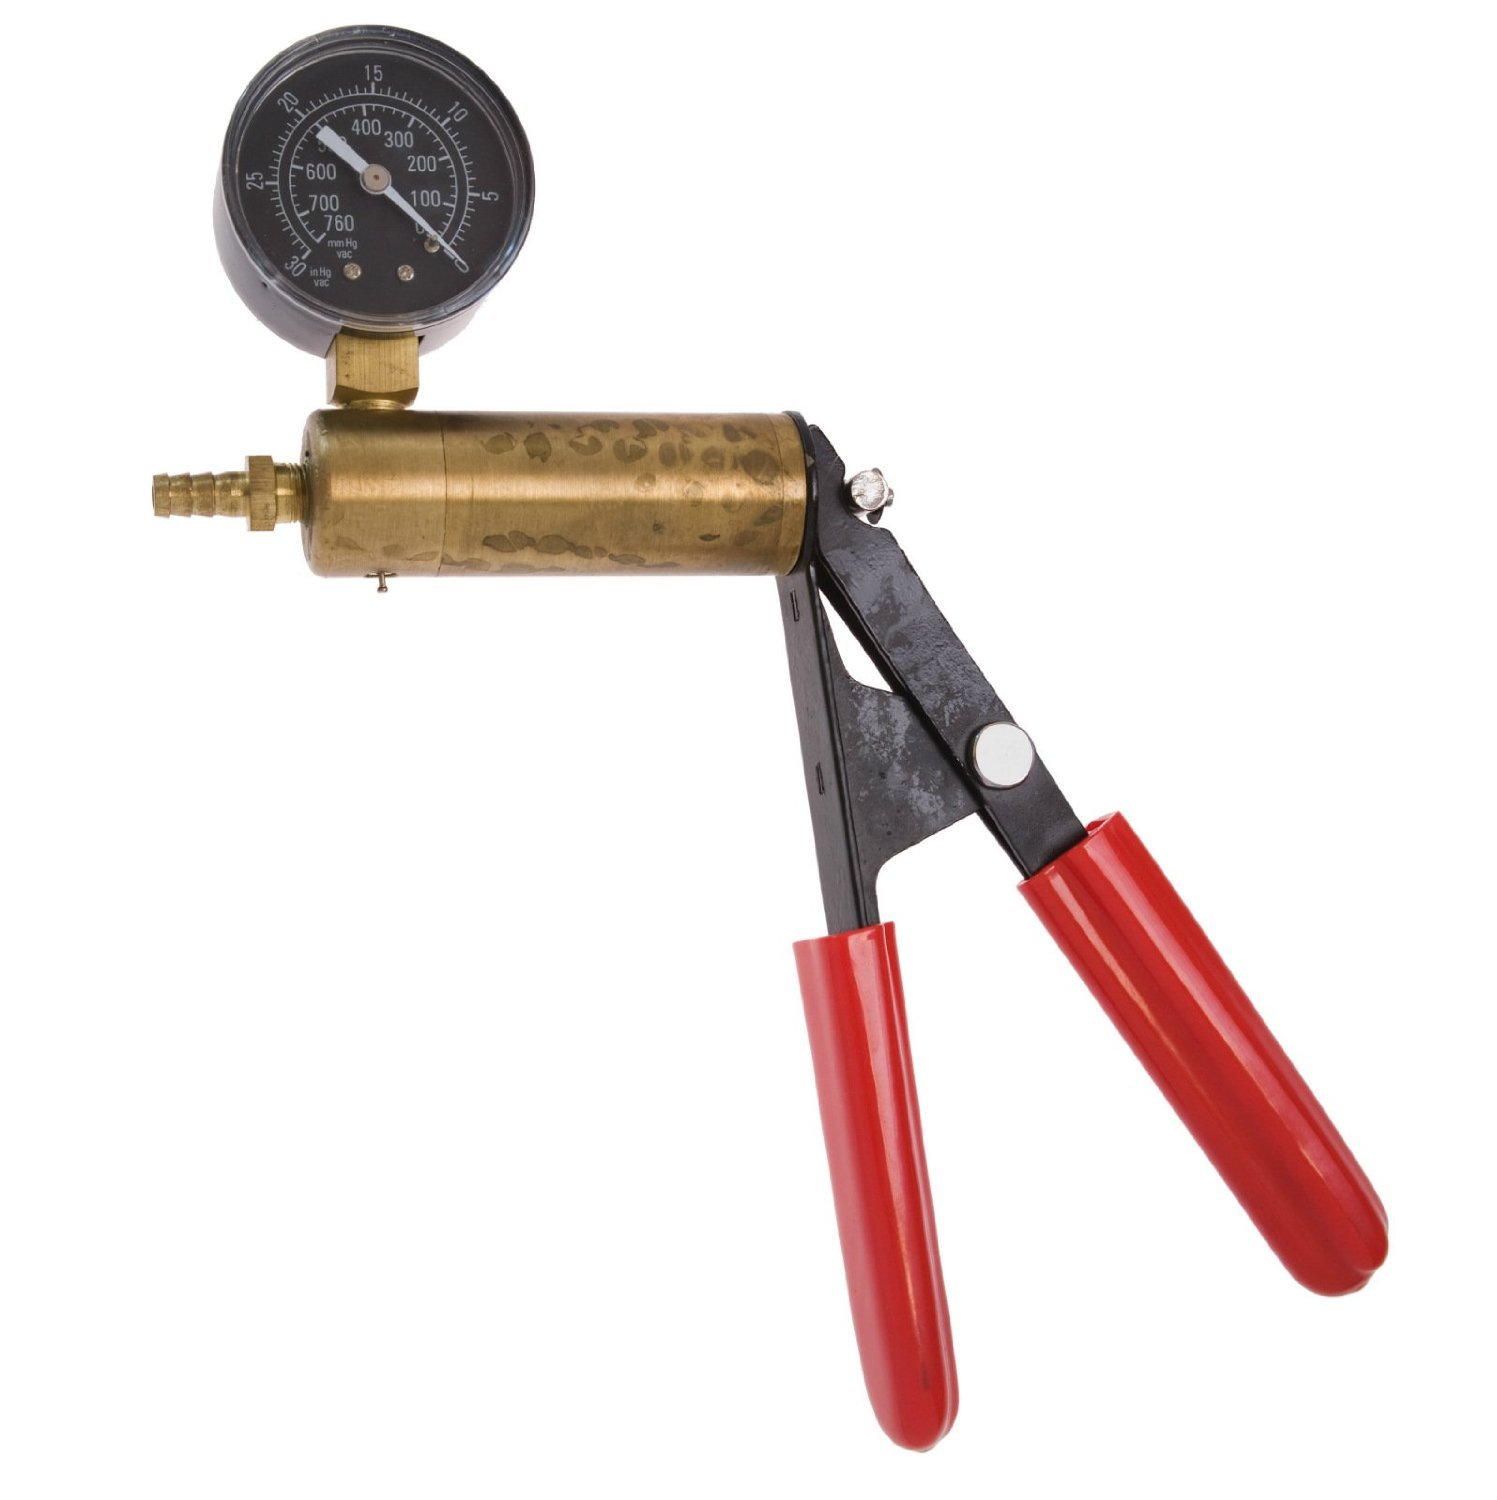 The Phenom Professional Package Kit Set Includes 2.50 ( 2 1/2 )'' x 12 '' Penis Vacuum Cylinder USA Made + Solid Brass Cylinder and Steel Handle Frame Hand Operated Design Vacuum Pump Pressure Gauge with Dual Calibration Vacuum Gauge + Hose Attachment with  by The Phenom